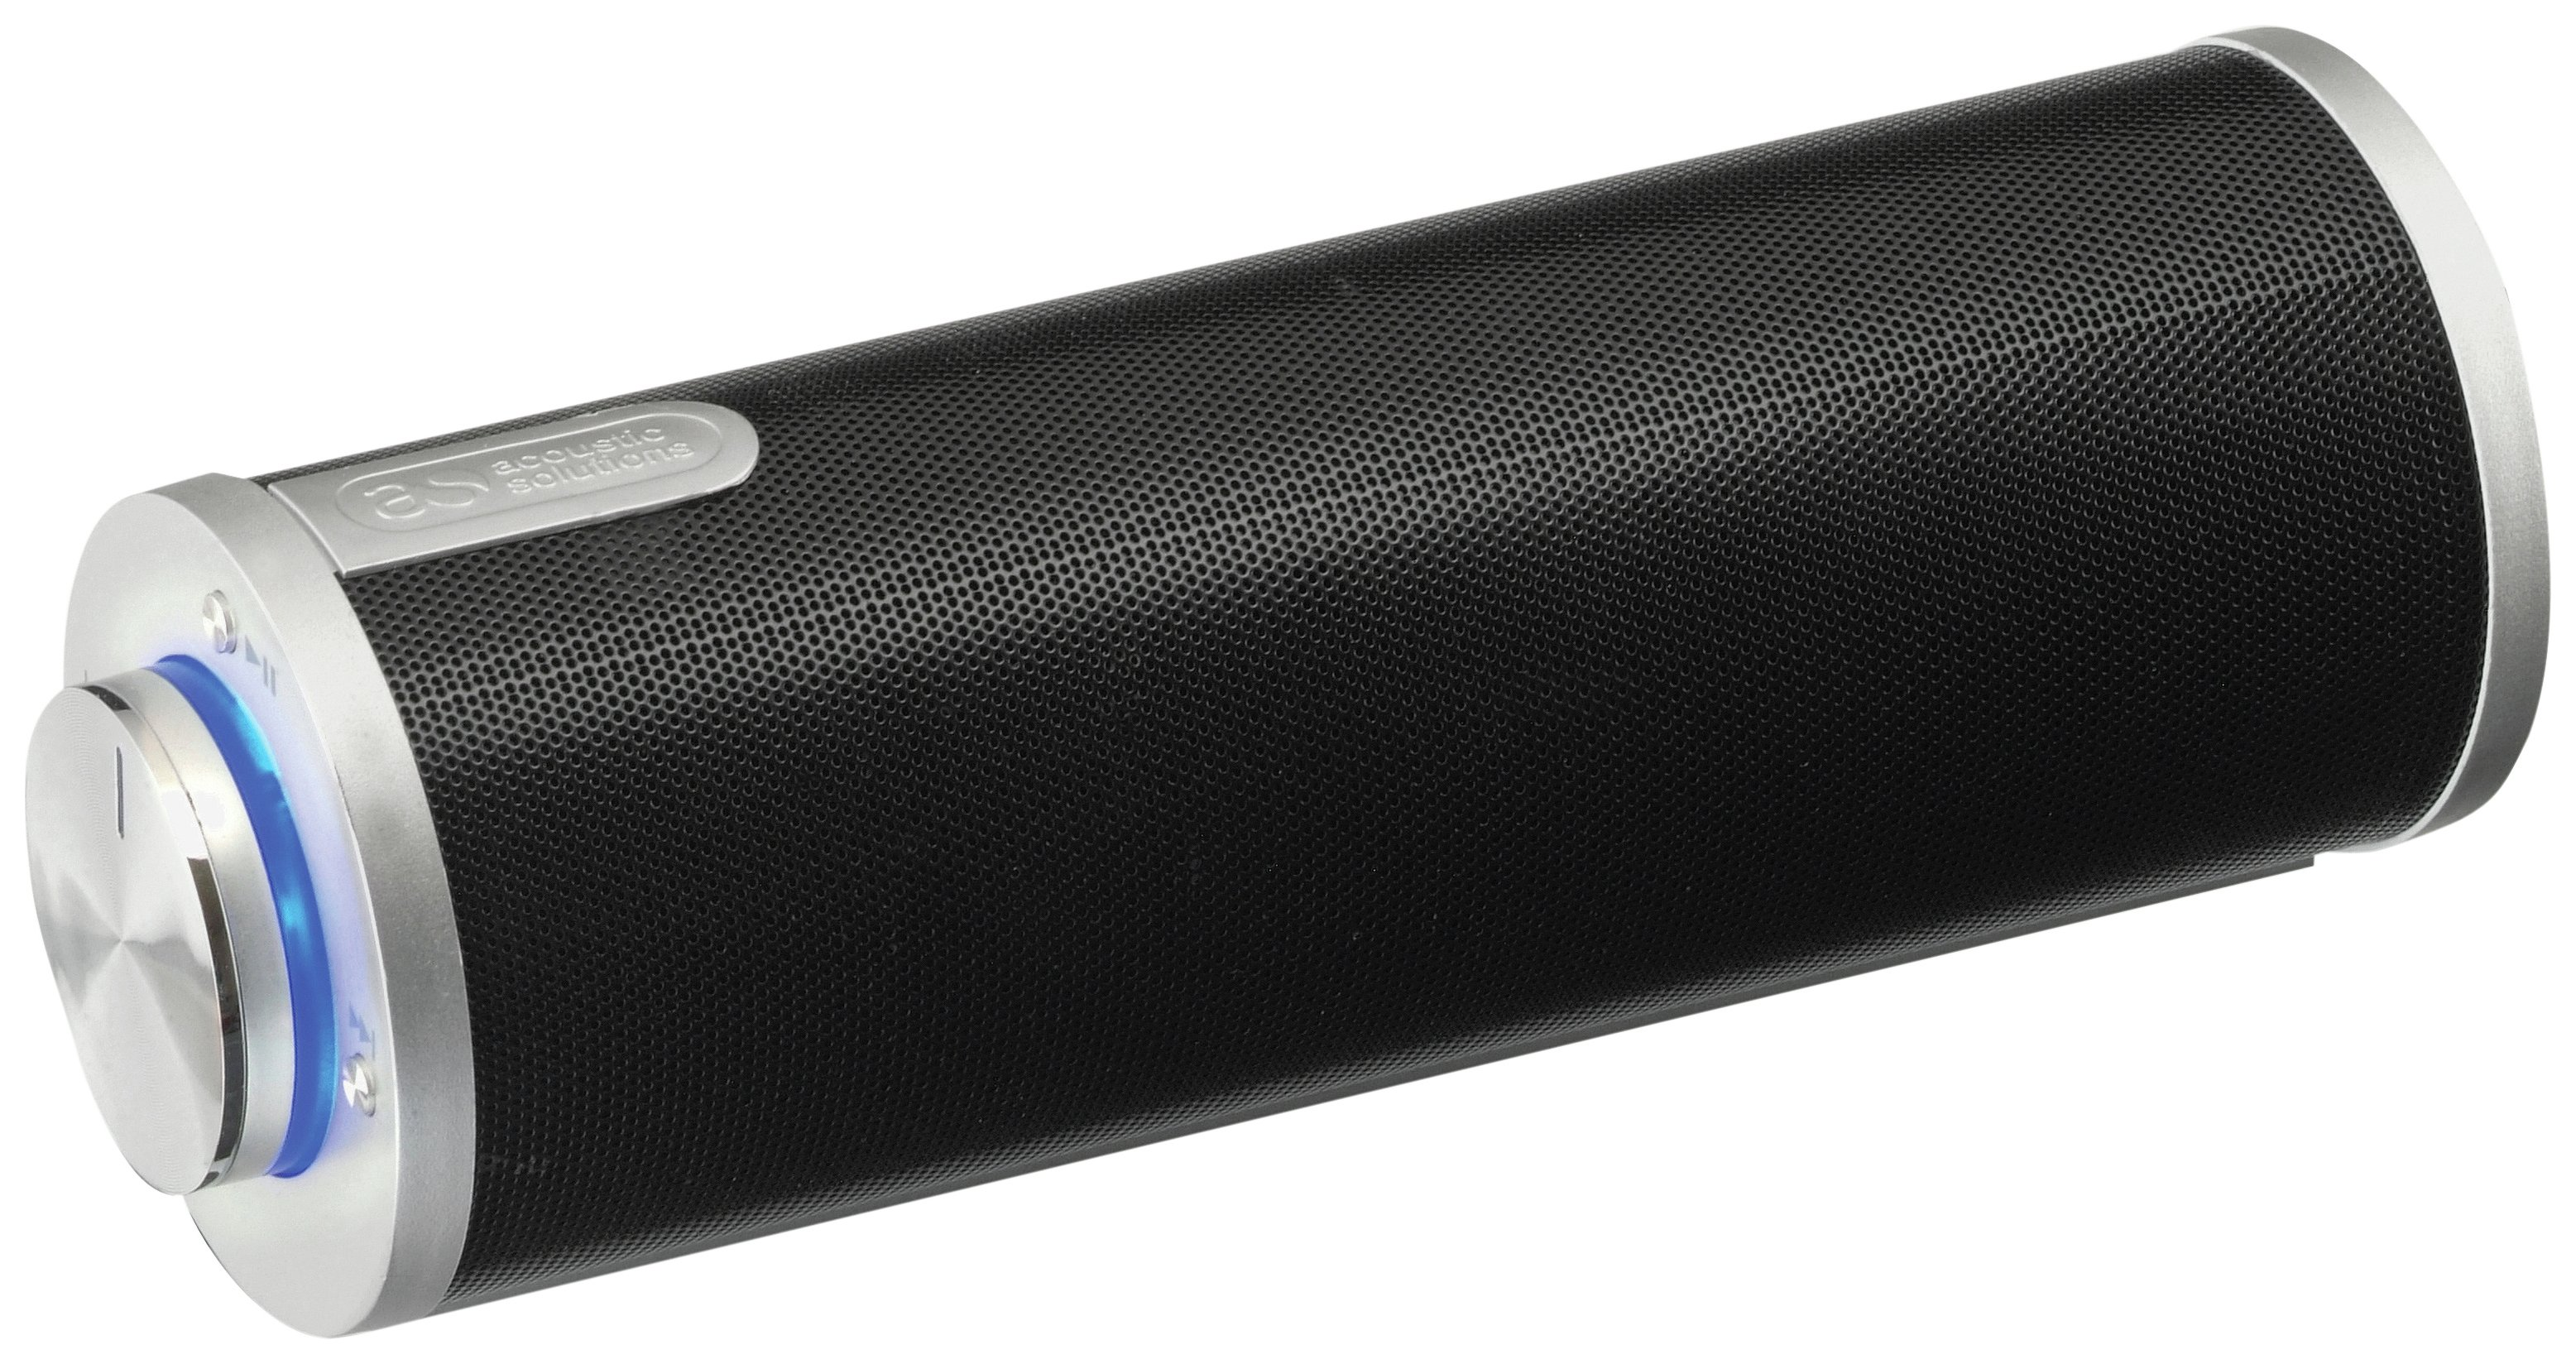 Acoustic Solutions Acoustic Solutions - Bluetooth Portable Speaker - Black/Silver